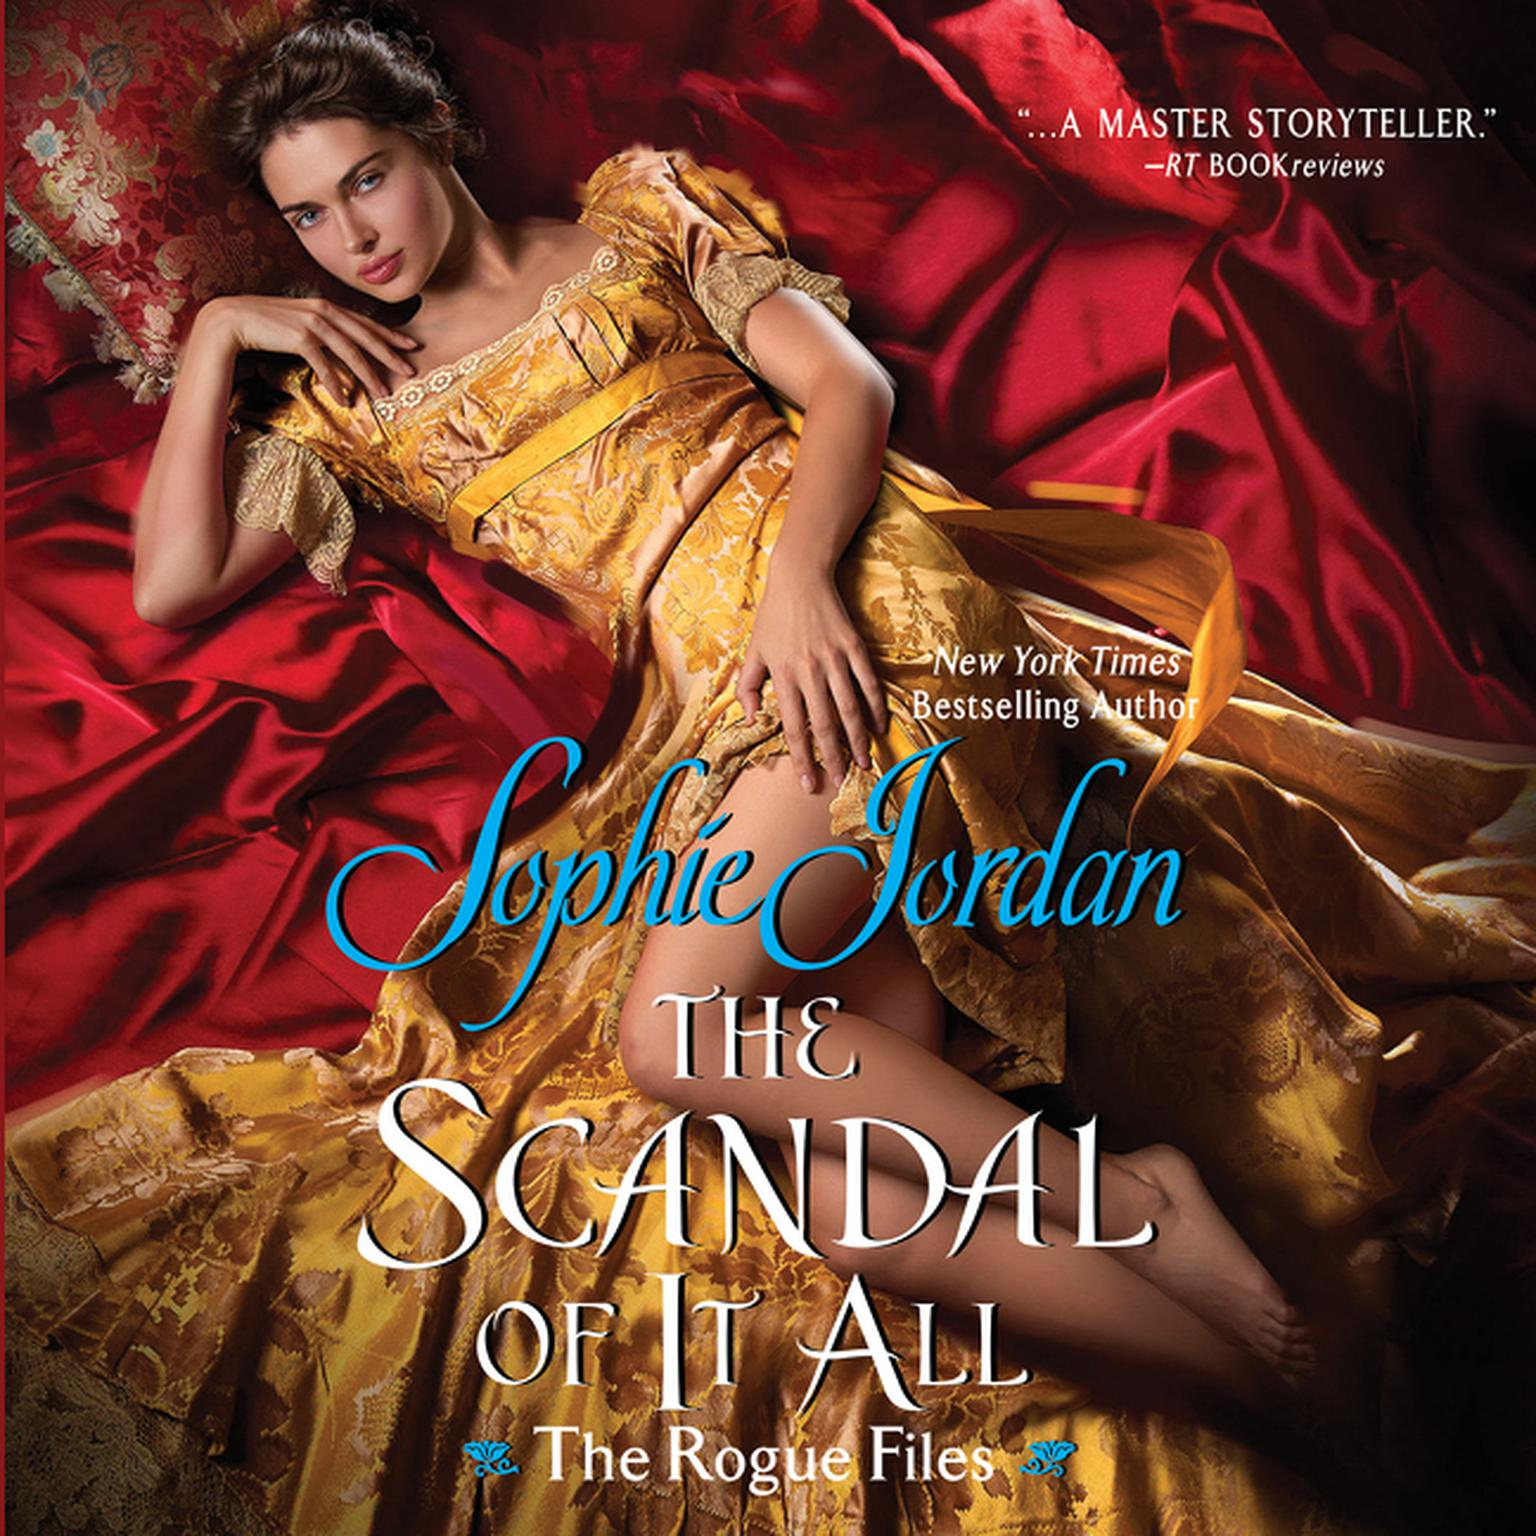 Printable The Scandal of It All: The Rogue Files Audiobook Cover Art